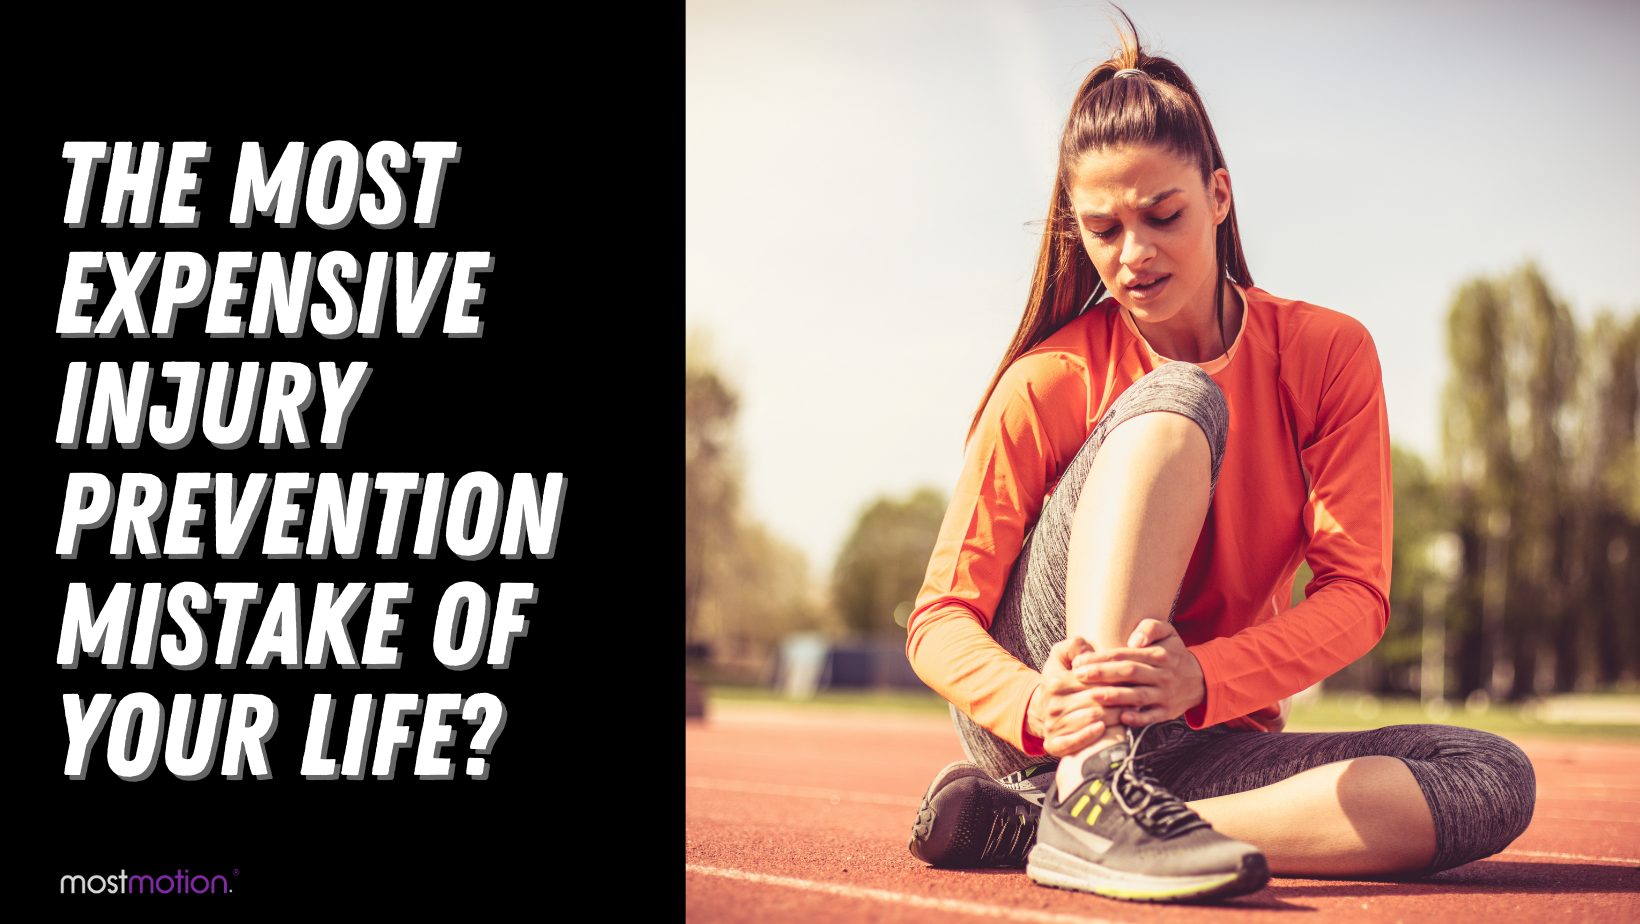 The Most Expensive Injury Prevention Mistake Of Your Life?